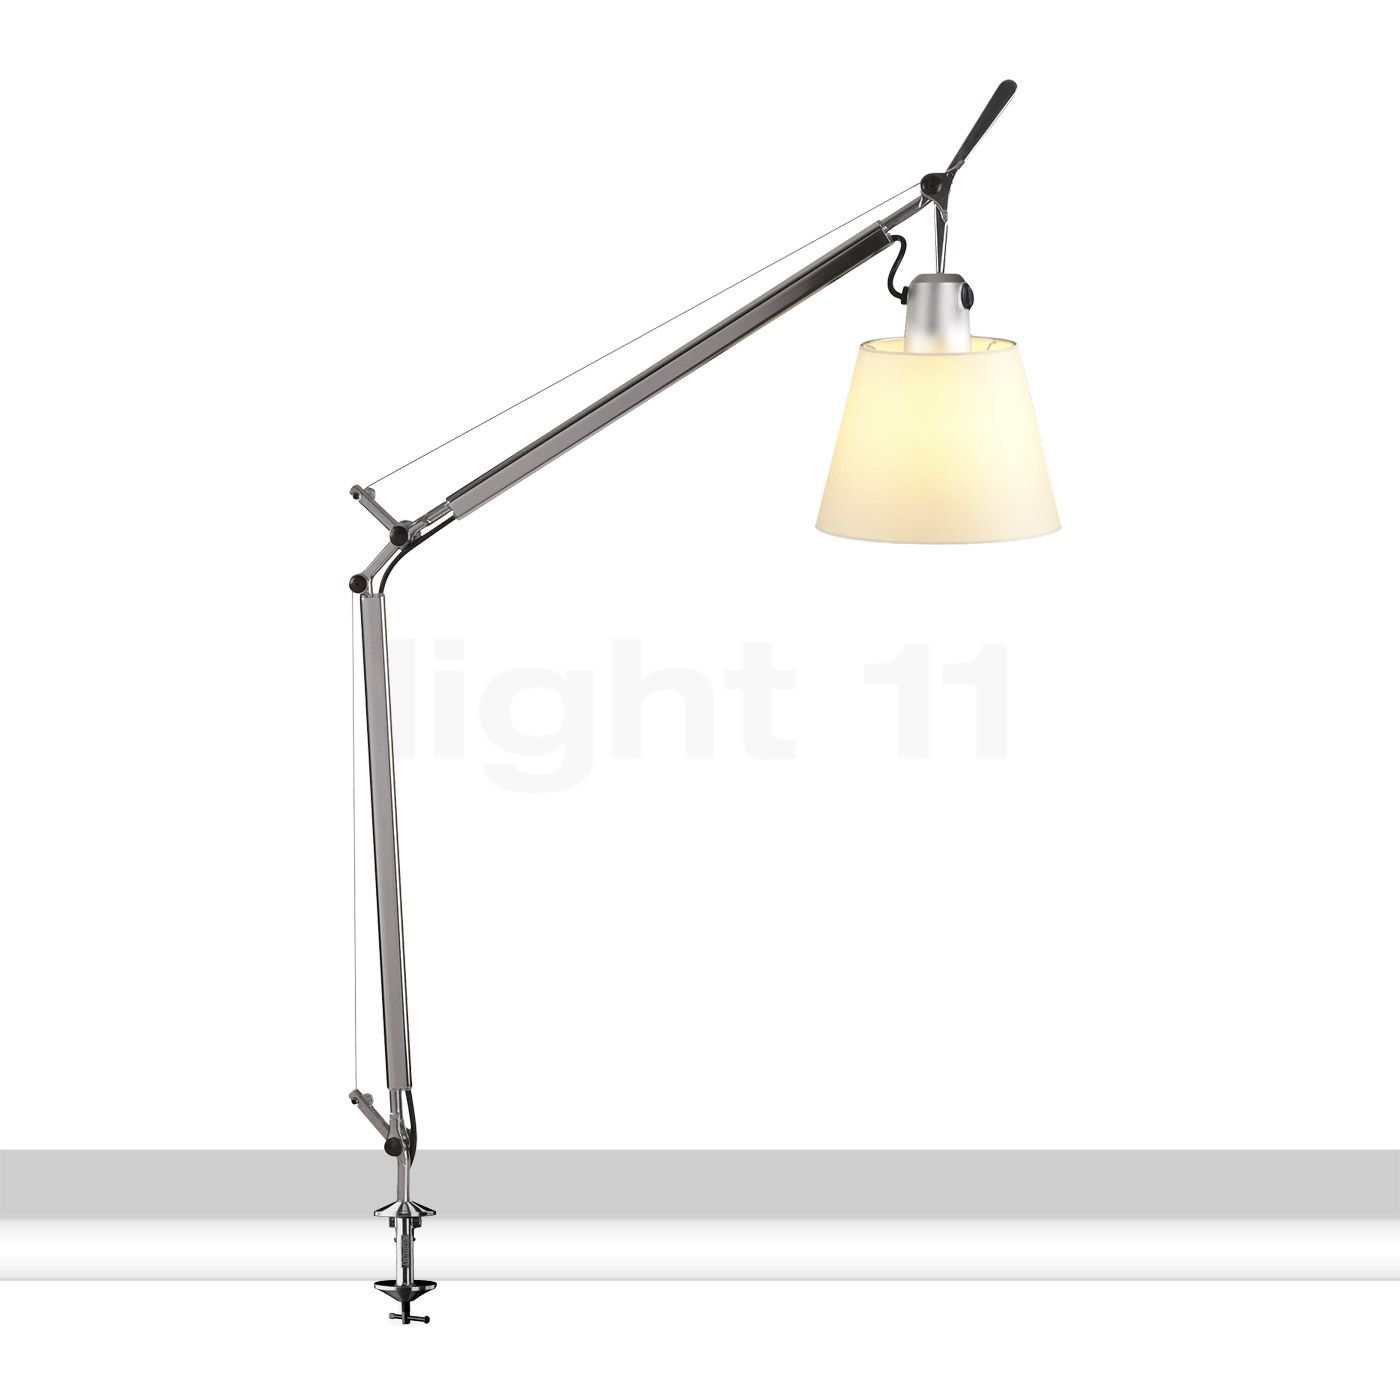 artemide tolomeo basculante tavolo avec pince de serrage lampe de bureau. Black Bedroom Furniture Sets. Home Design Ideas